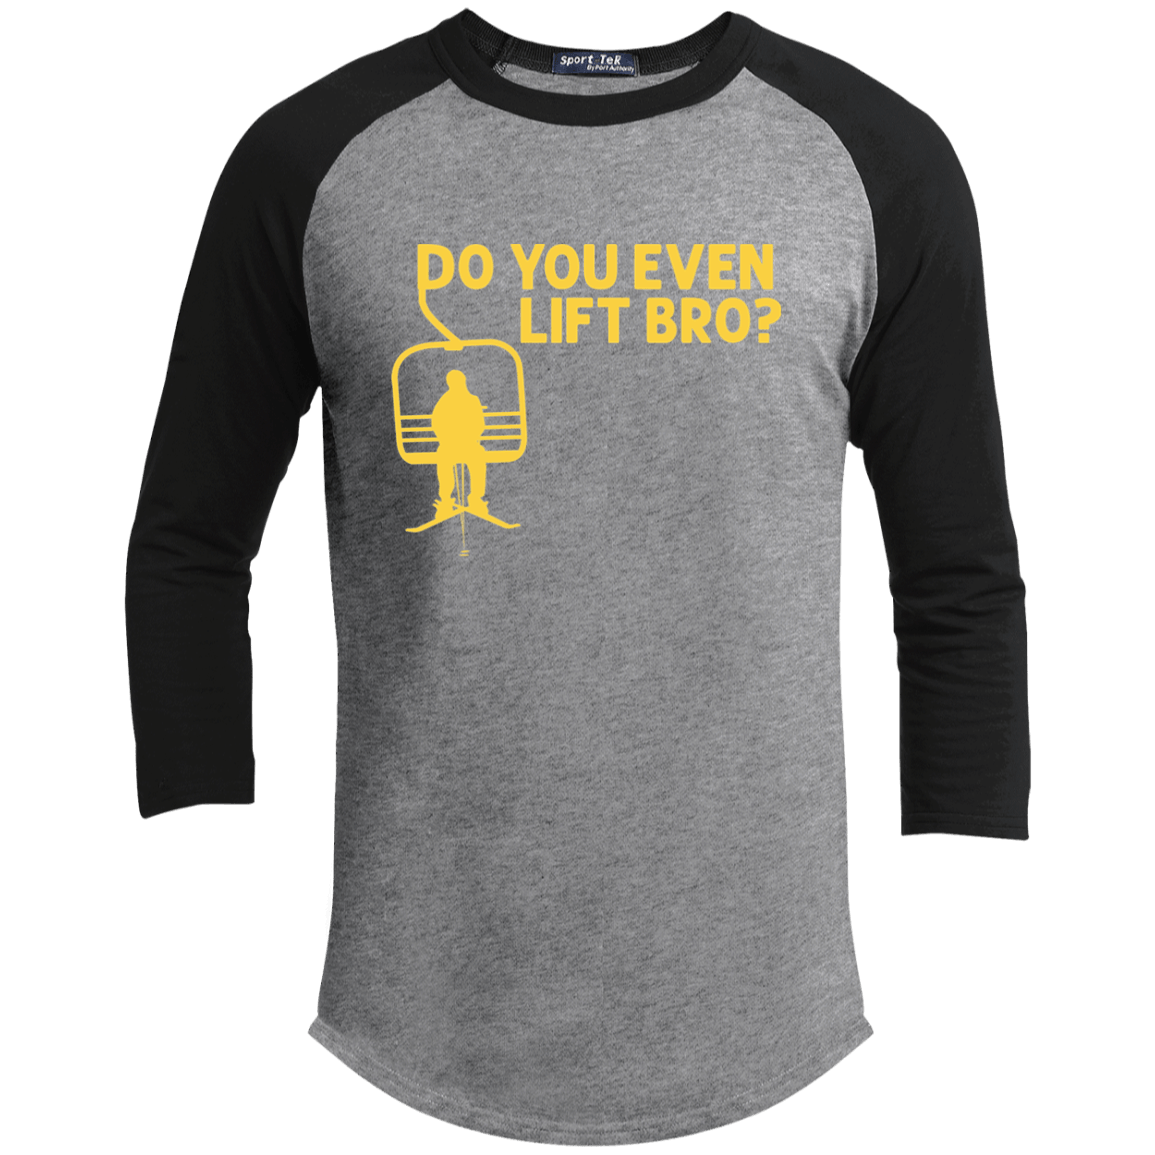 41856b3d Do You Even Lift Bro Ski Youth 3/4 Sleeve T-Shirt – Last Chairlift